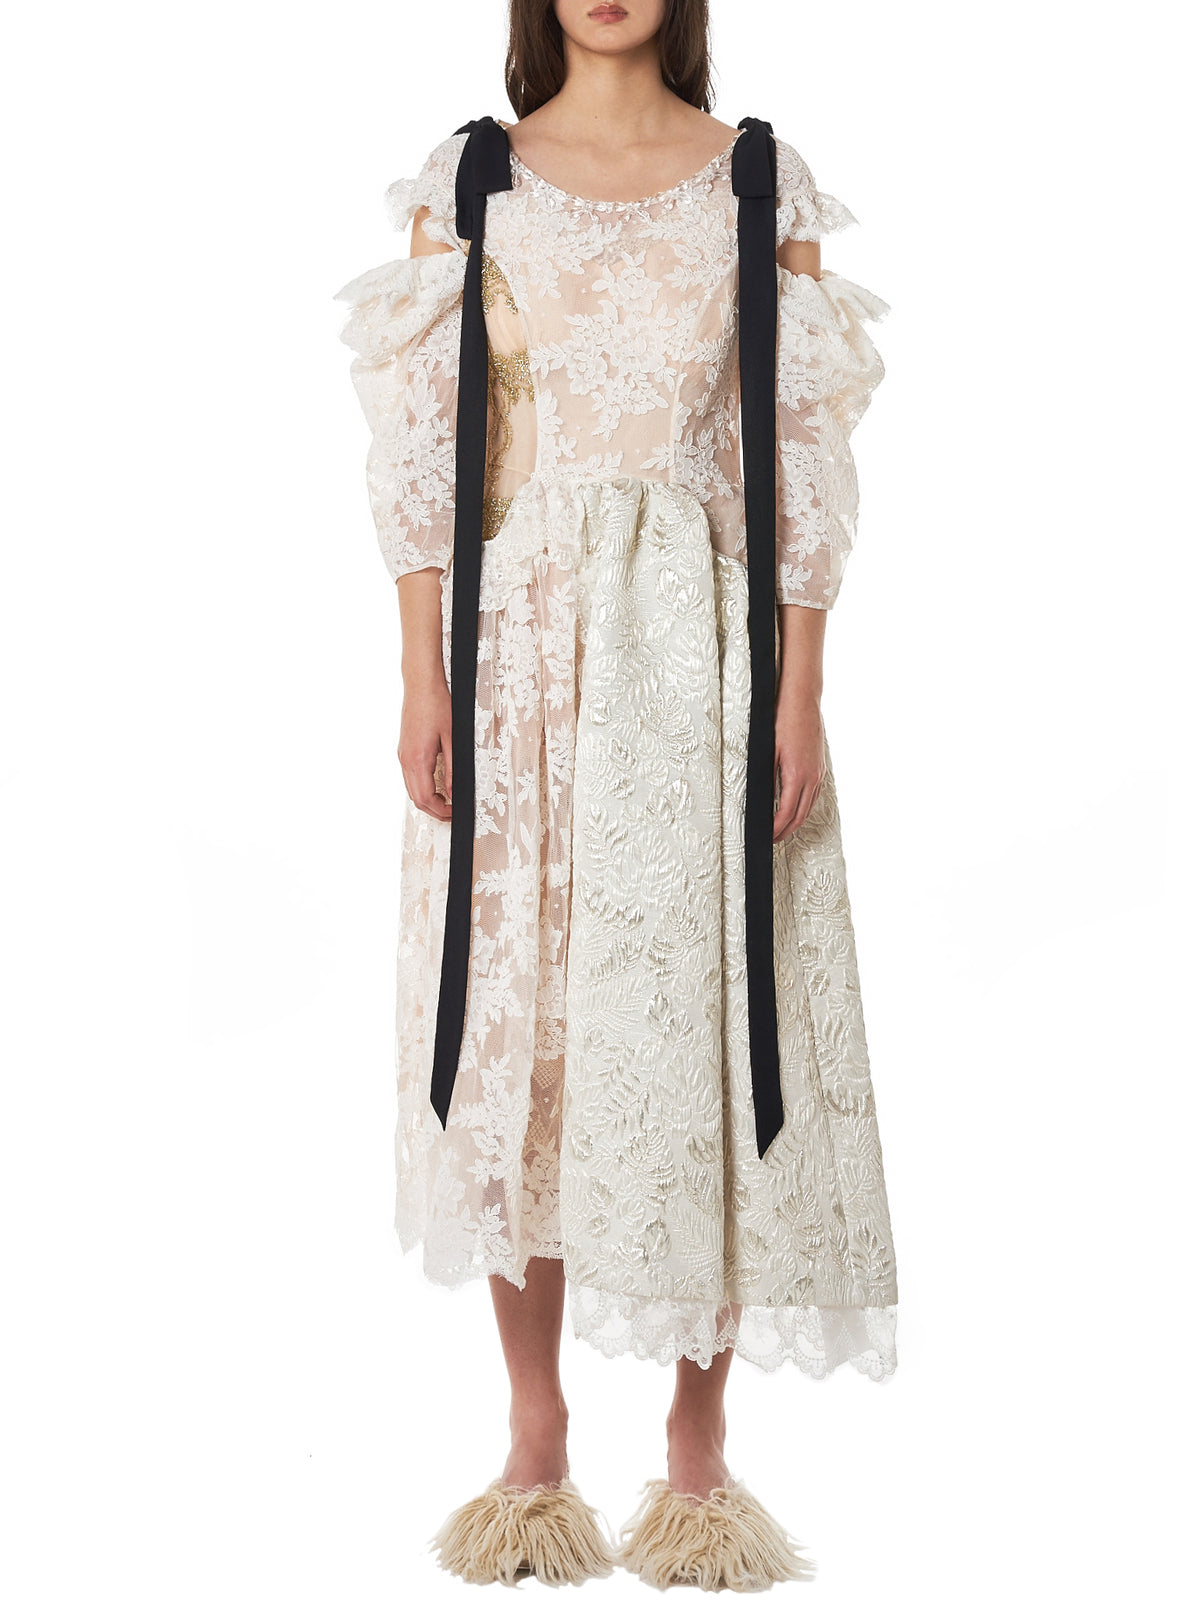 Simone Rocha Ribbon Dress - Hlorenzo Front